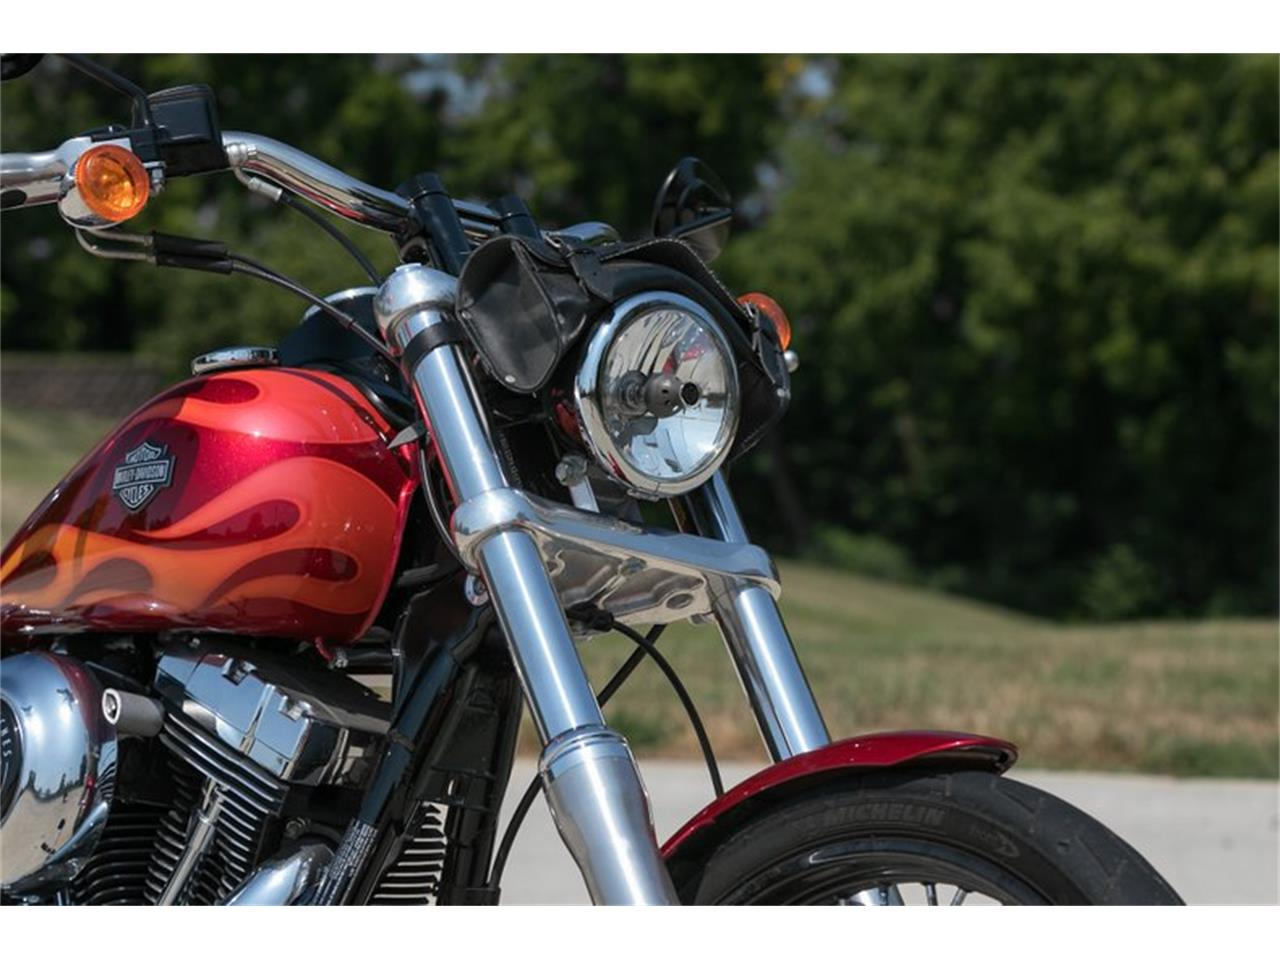 2012 Harley-Davidson Wide Glide (CC-1138953) for sale in St. Charles, Missouri